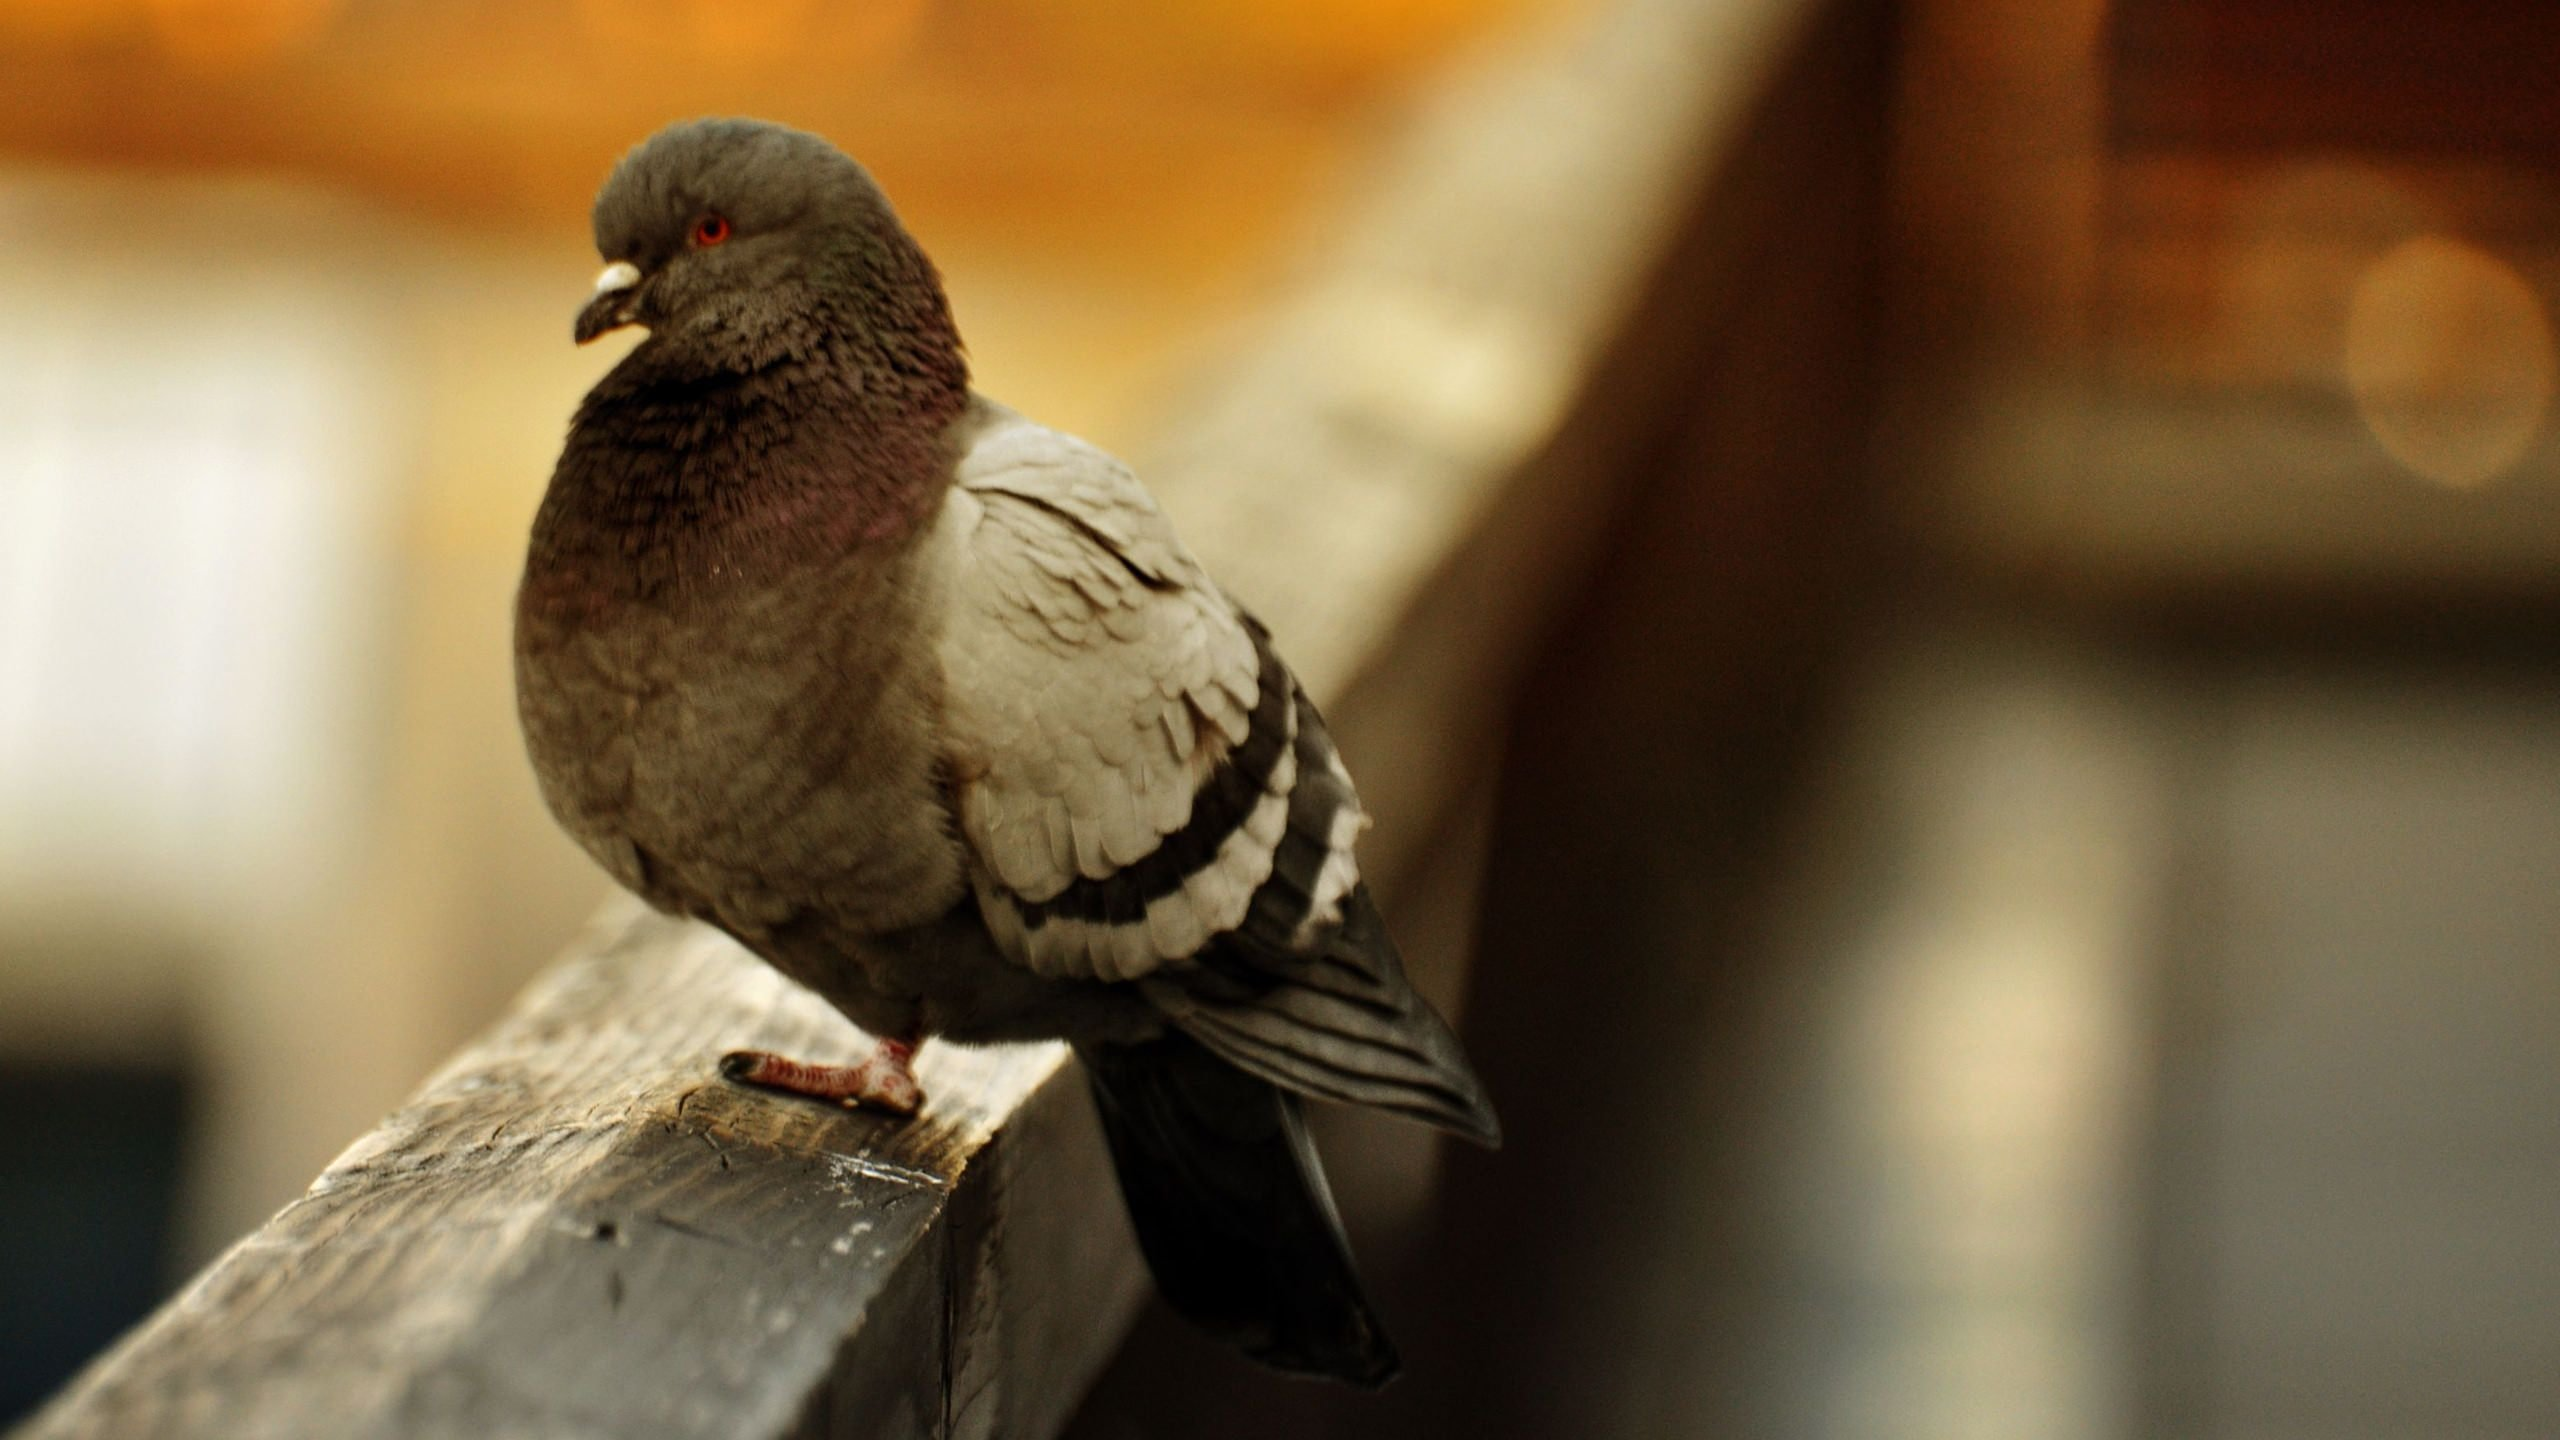 pigeon wallpapers, photos and desktop backgrounds up to 8k